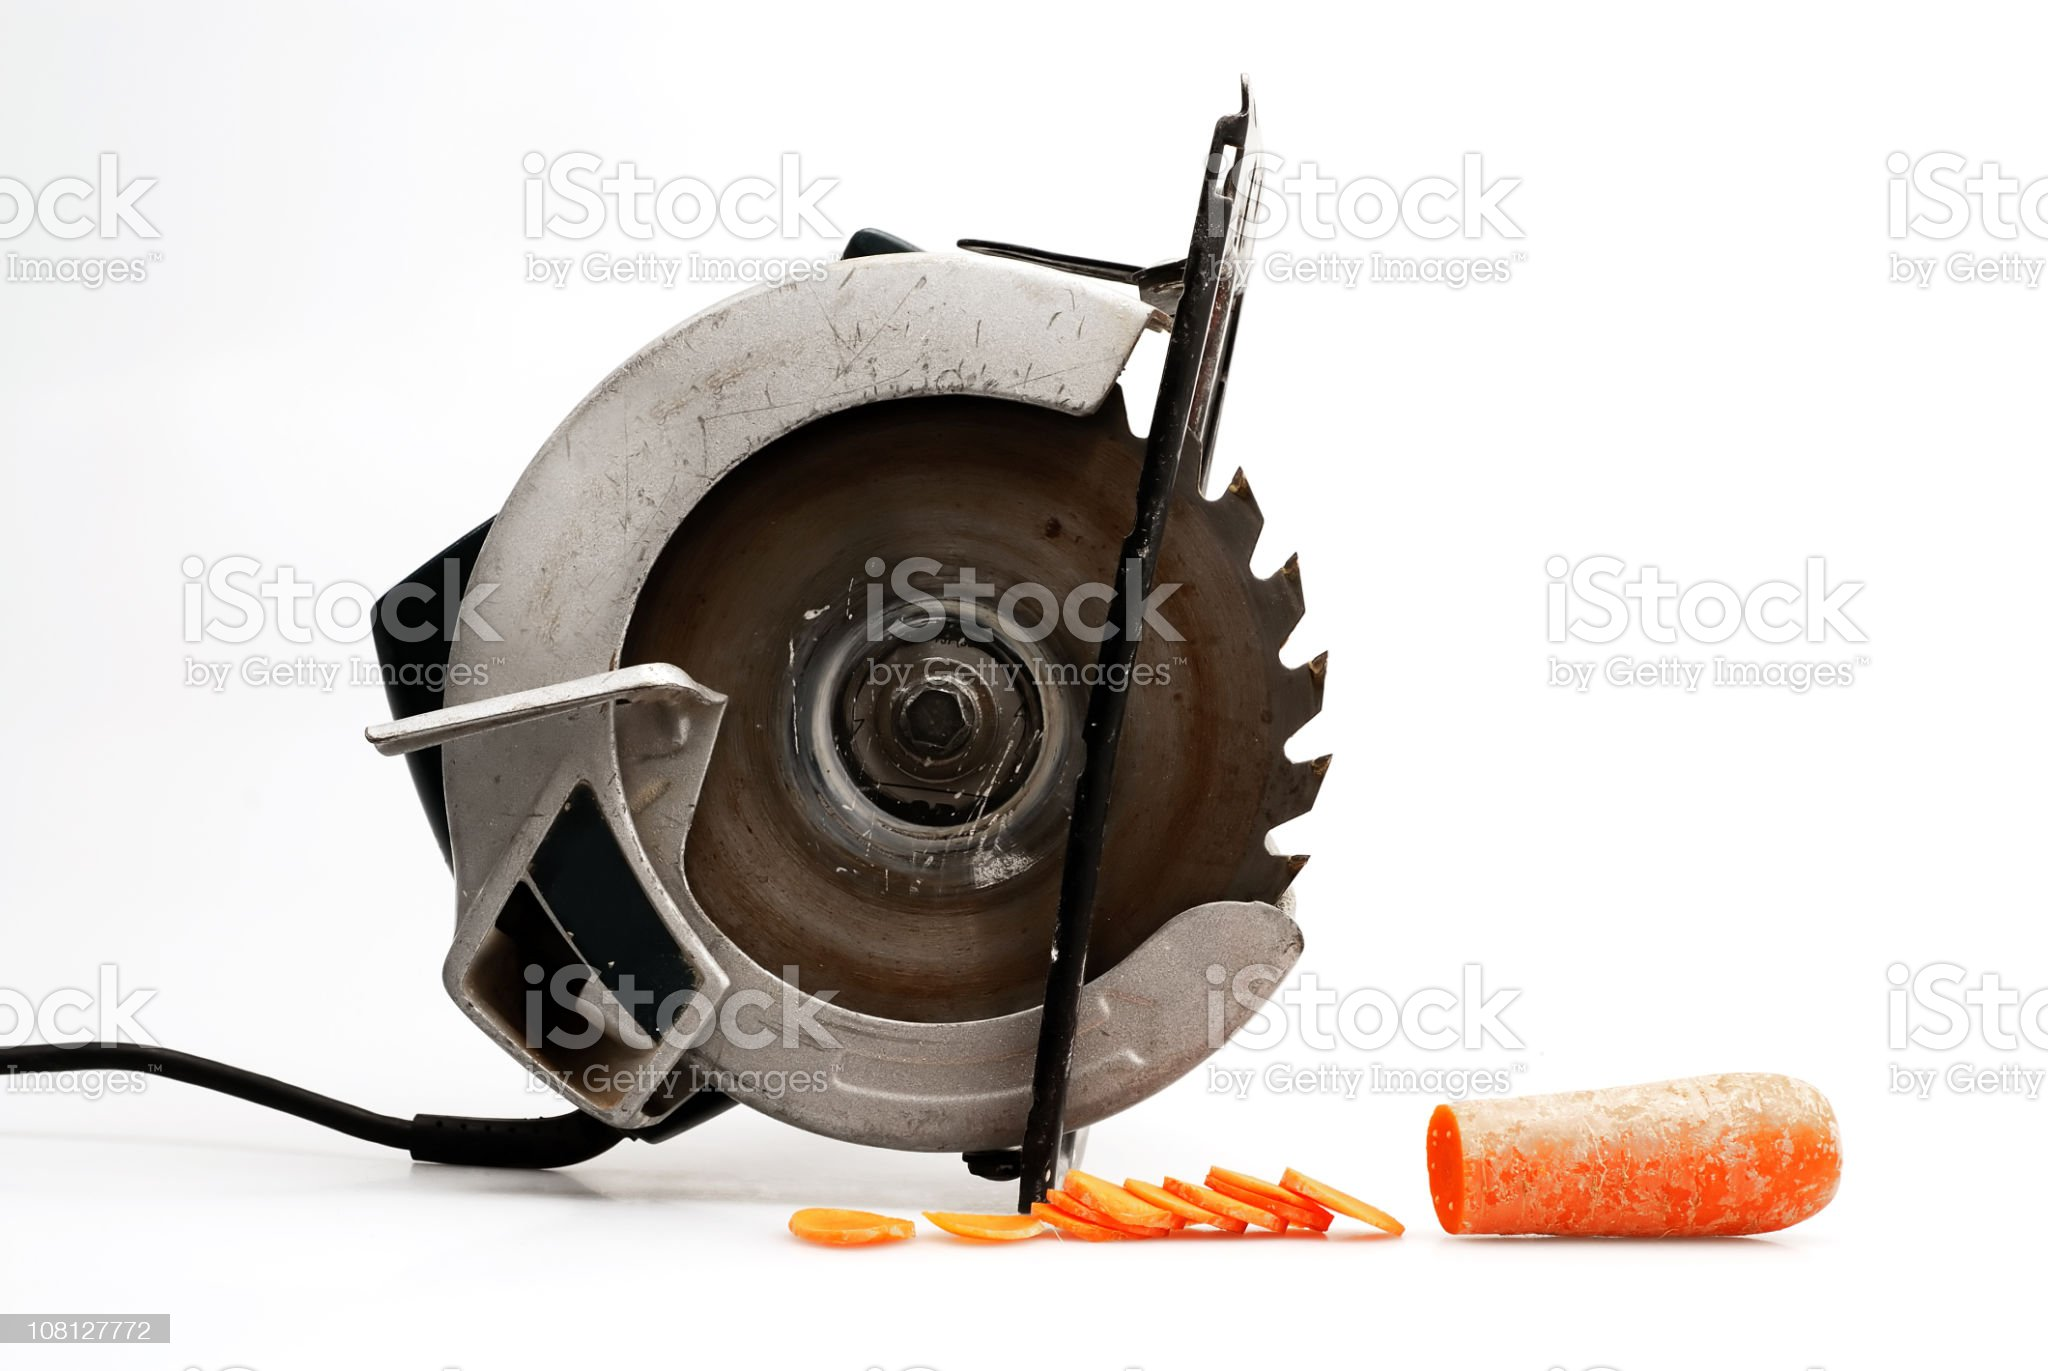 Saw Sitting Beside Cut Up Carrot Slice, On White Background royalty-free stock photo